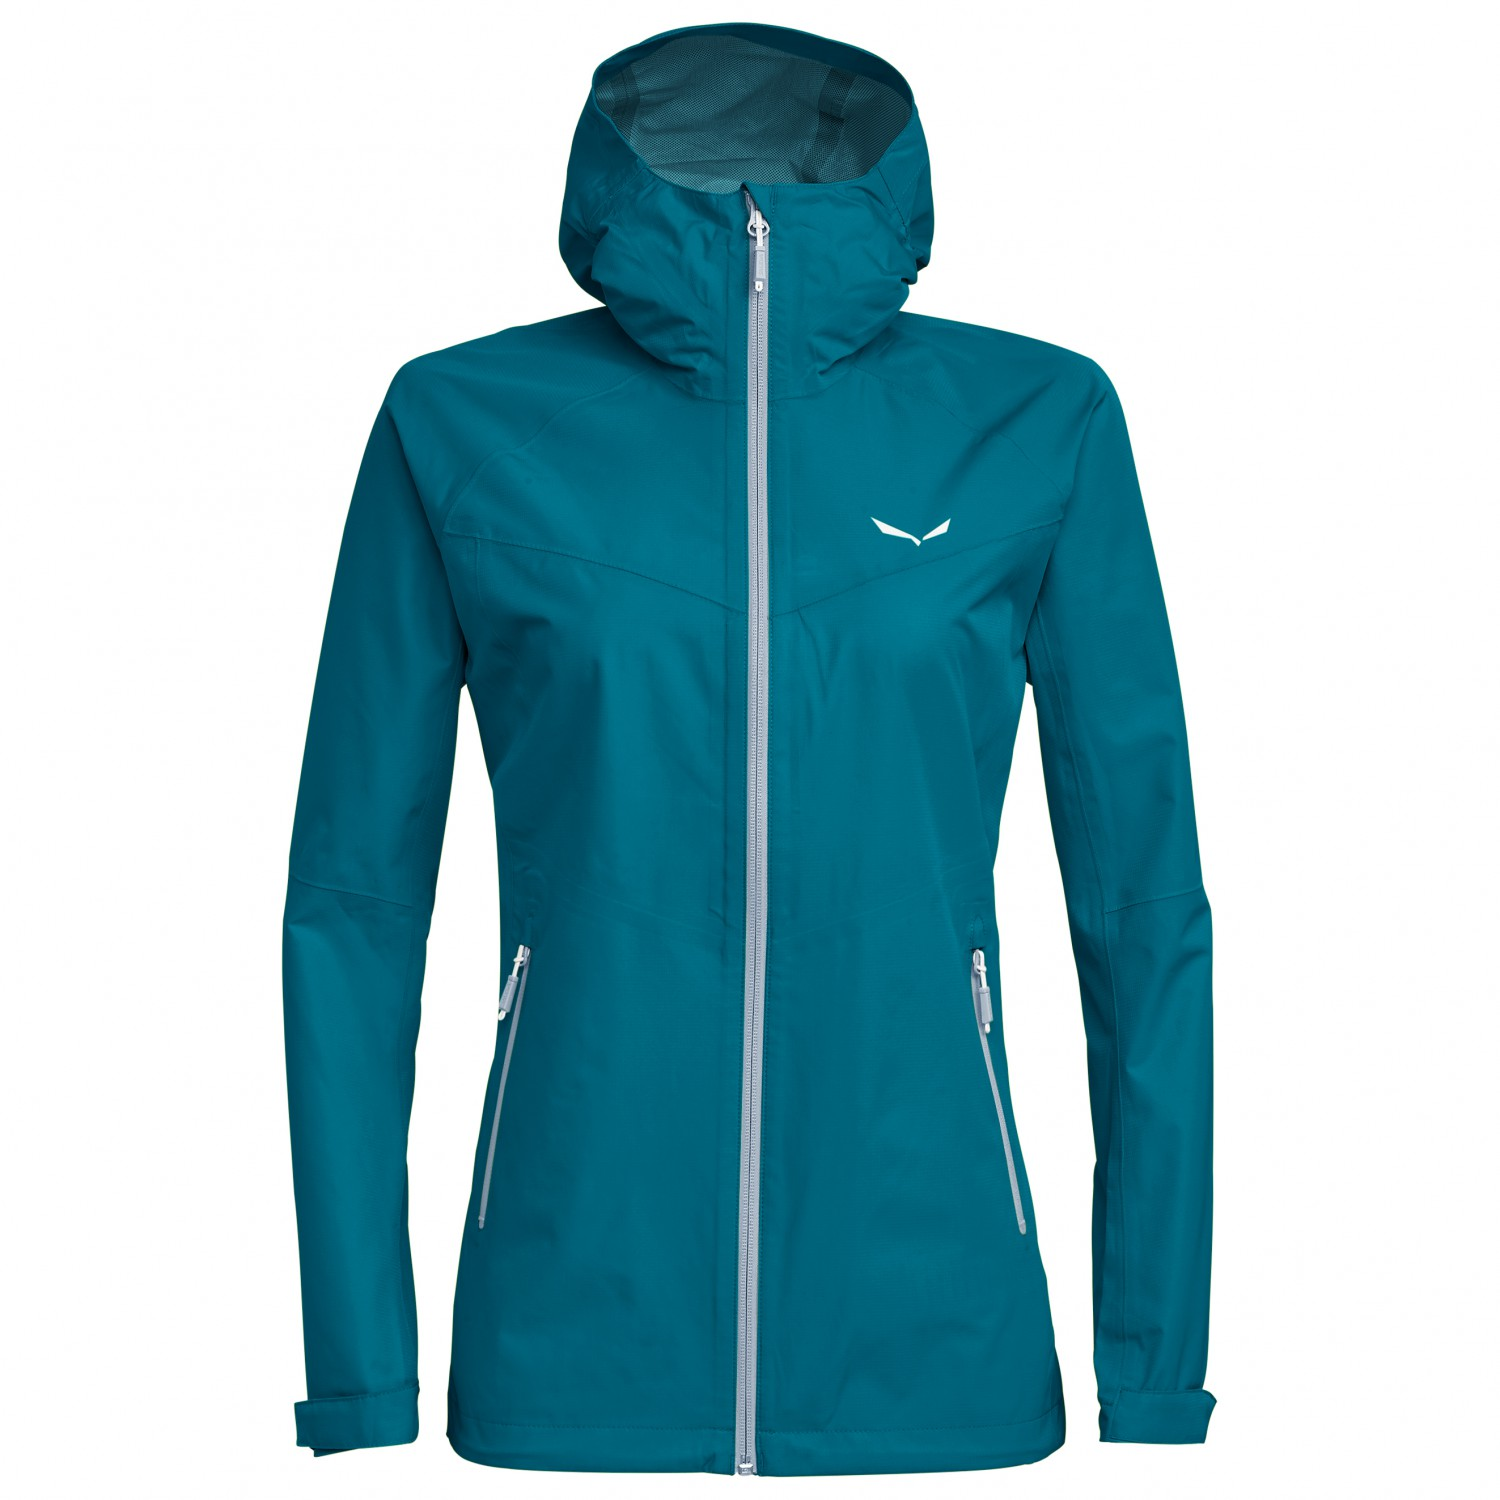 competitive price 5728b ad7ad Salewa Puez Aqua 3 PTX Jacket - Regenjacke Damen ...